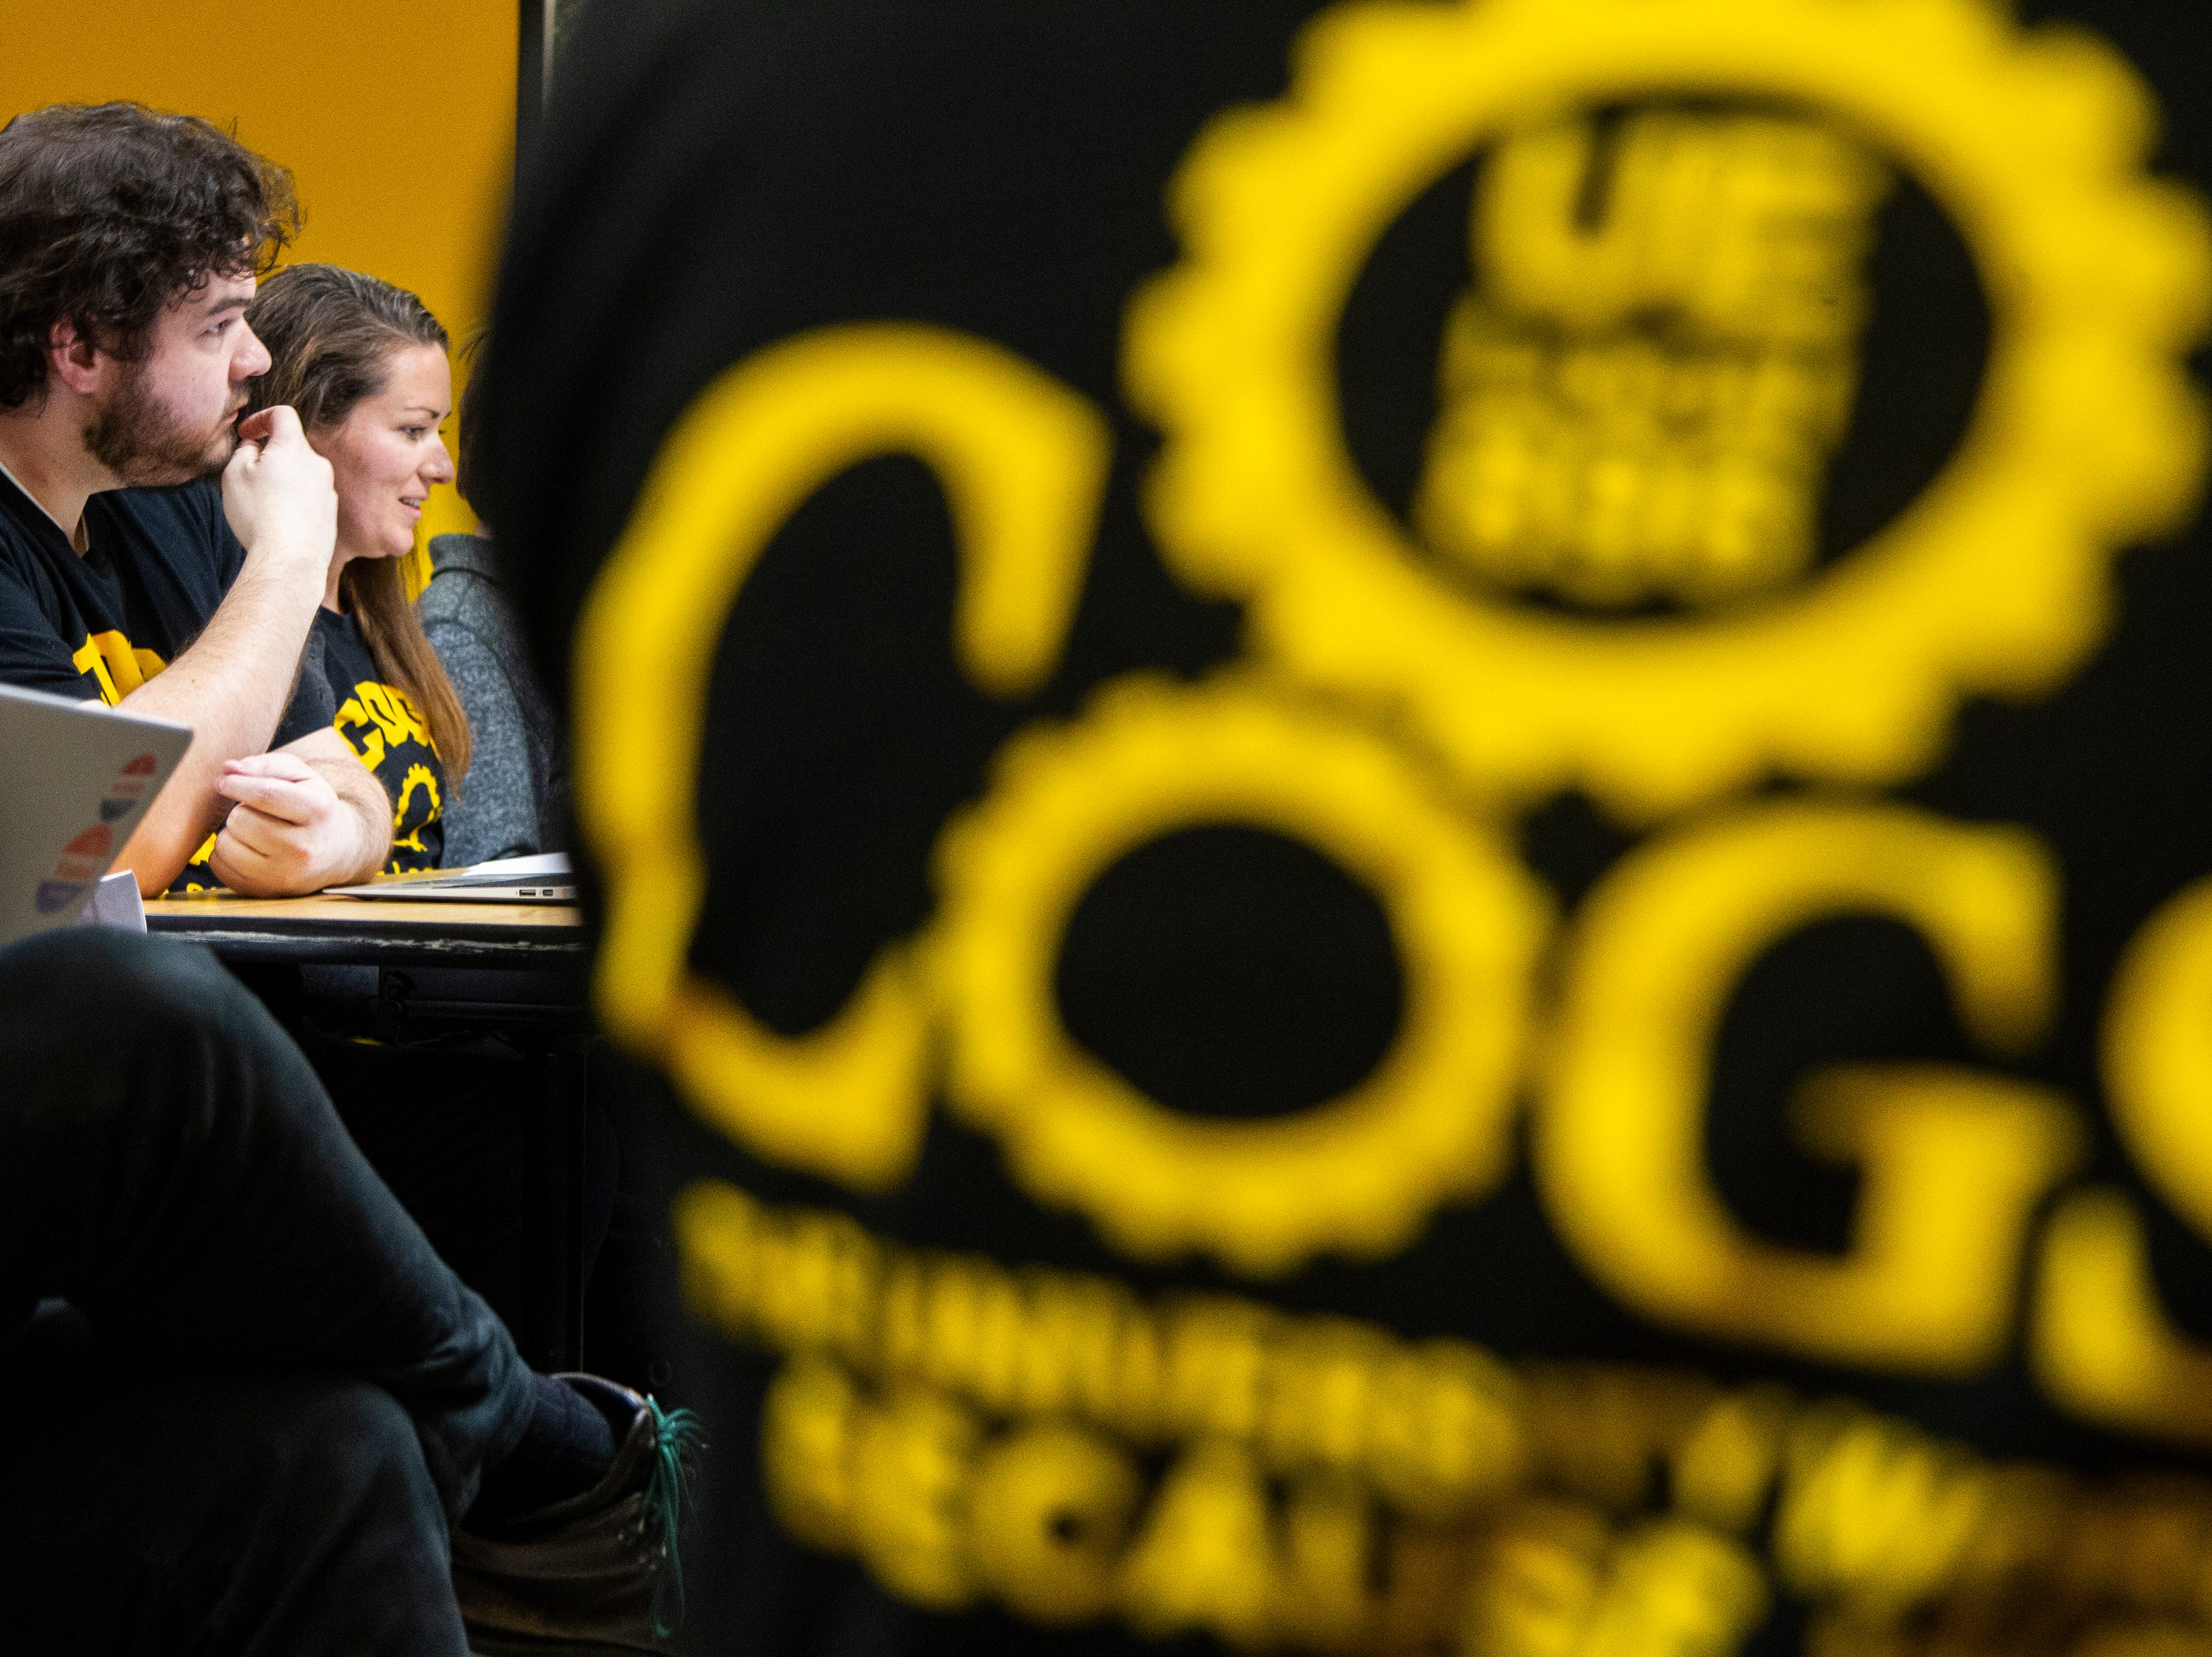 Campaign to Organize Graduate Students President (second from left) Laura Szech speaks during a contract proposal from the Iowa Board of Regents on Wednesday, Dec. 12, 2018, at the Iowa Memorial Union in Iowa City.